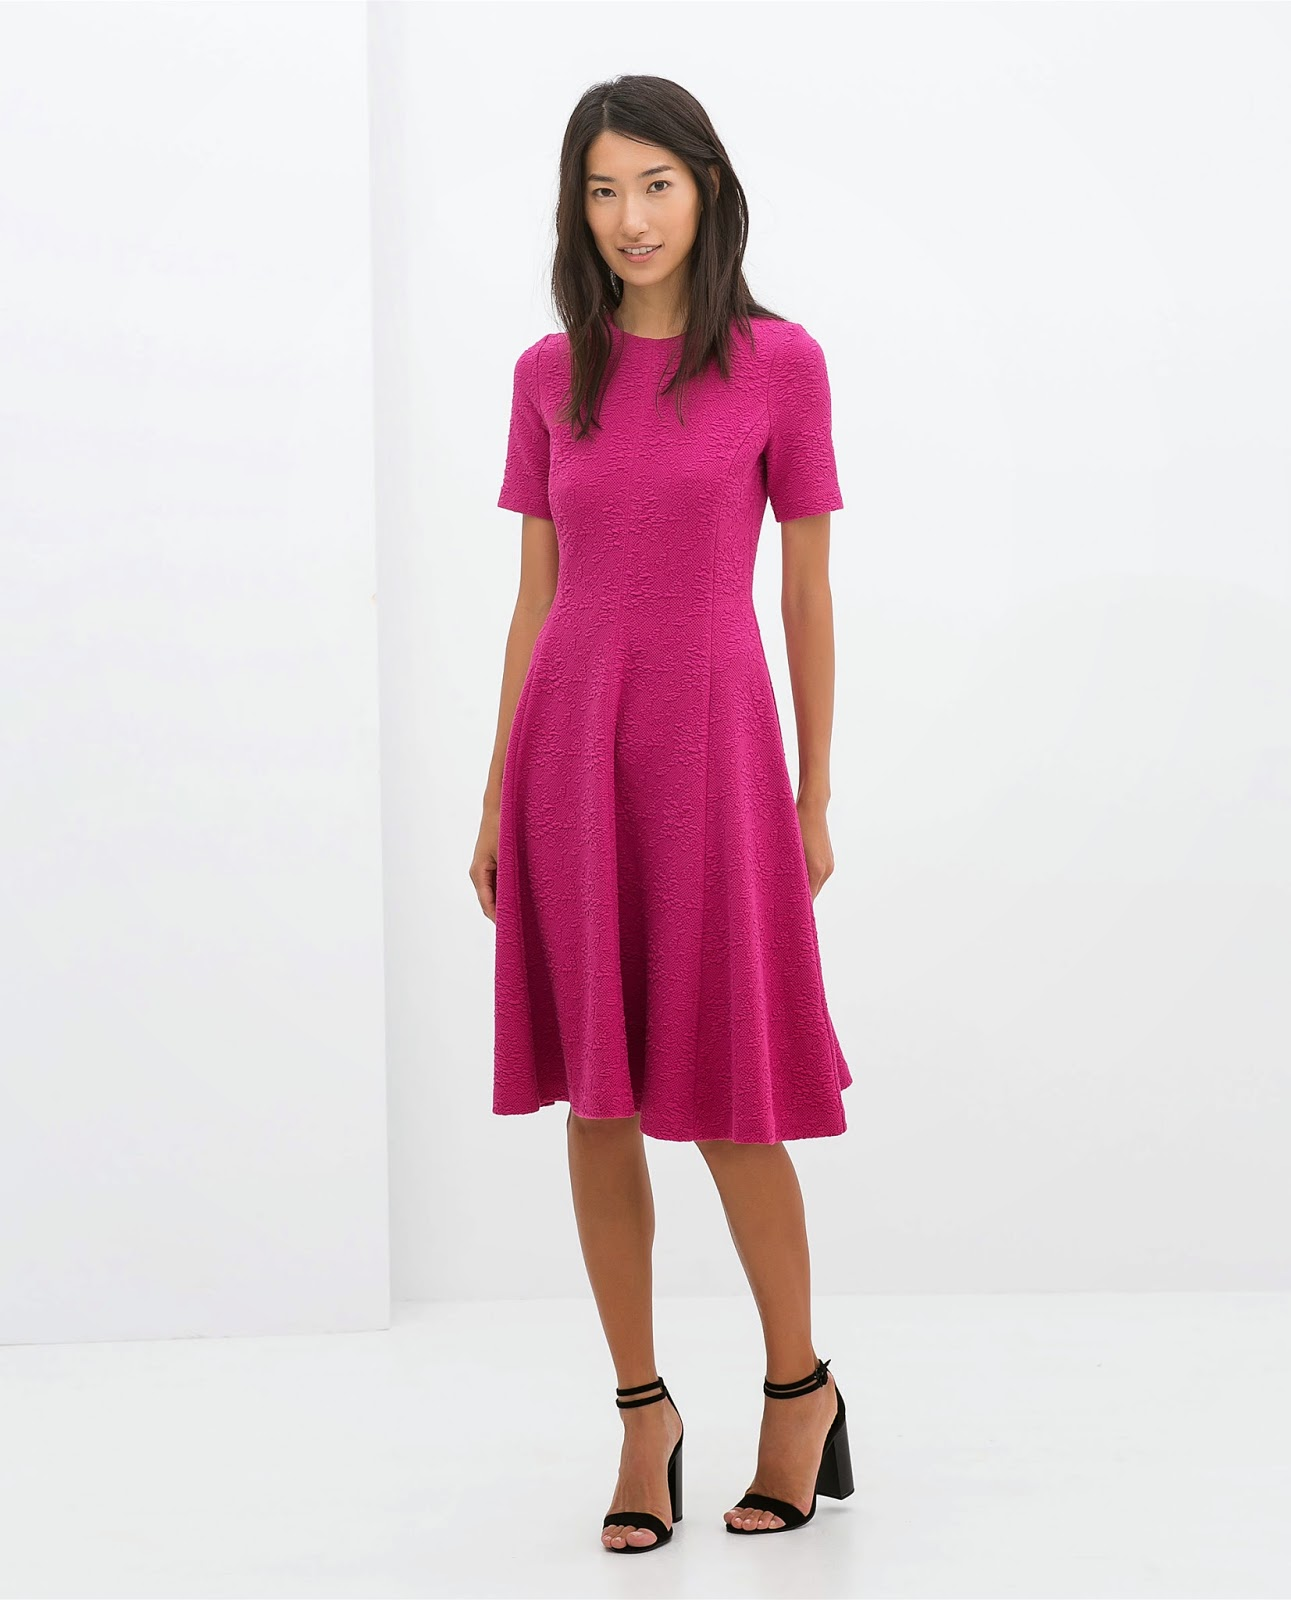 zara bright pink dress